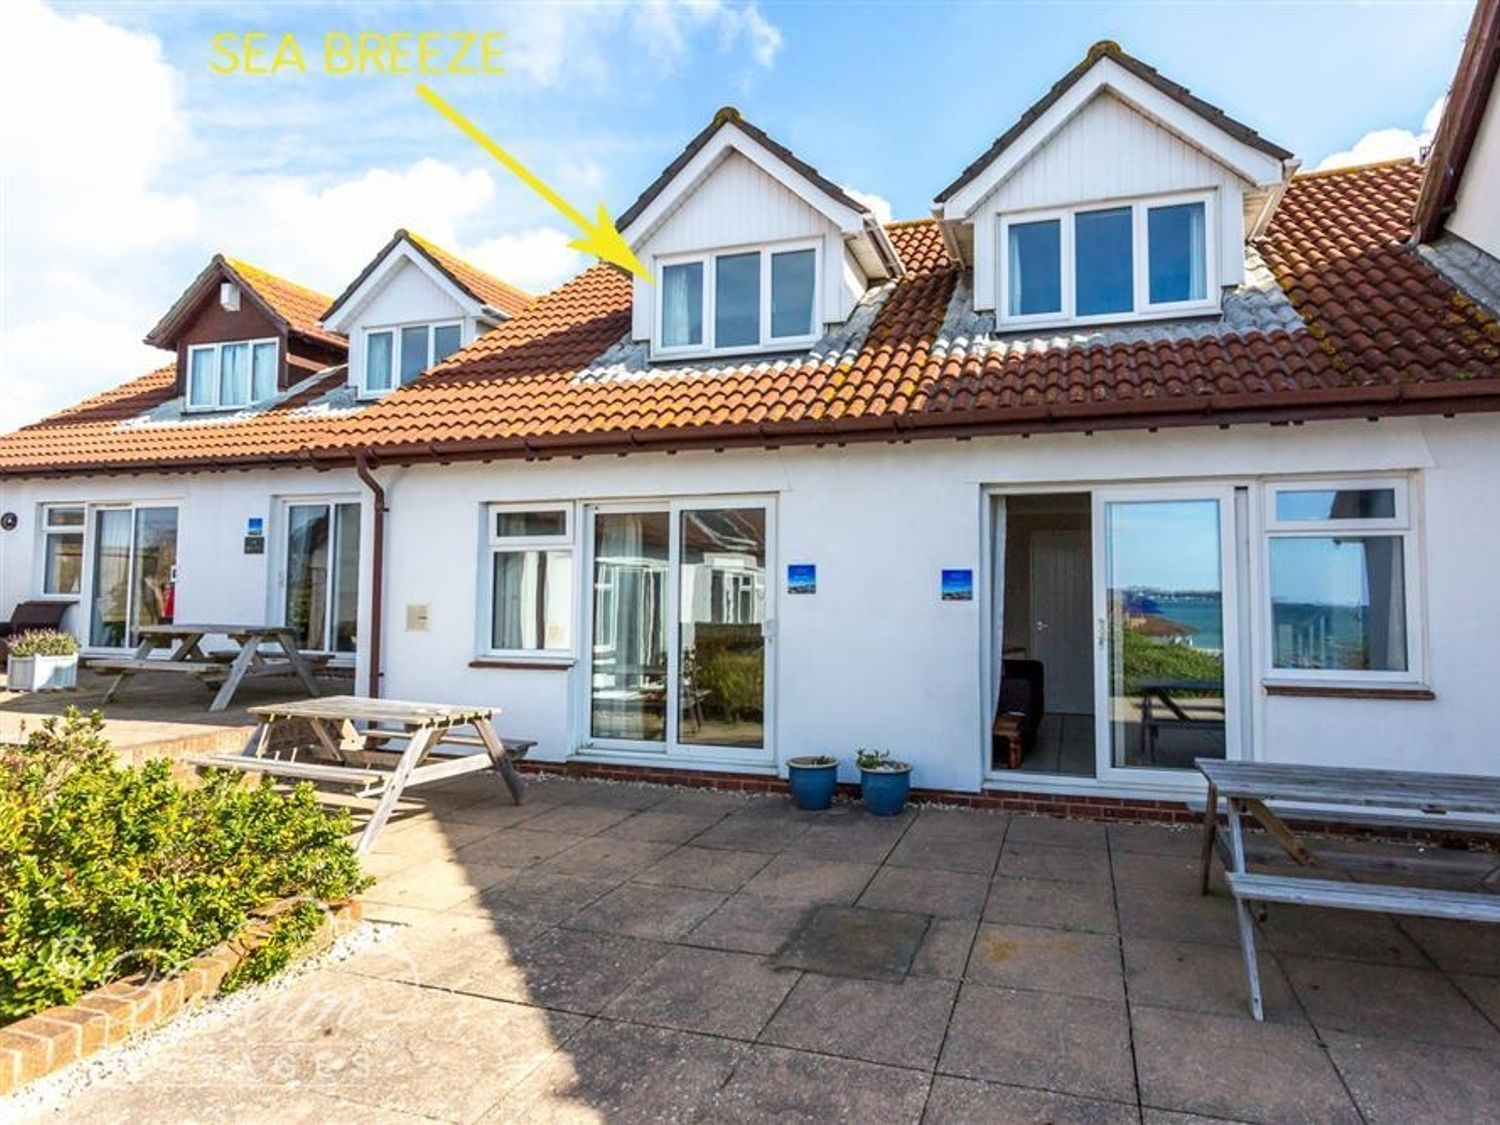 Sea Breeze - Dorset - 994026 - photo 1